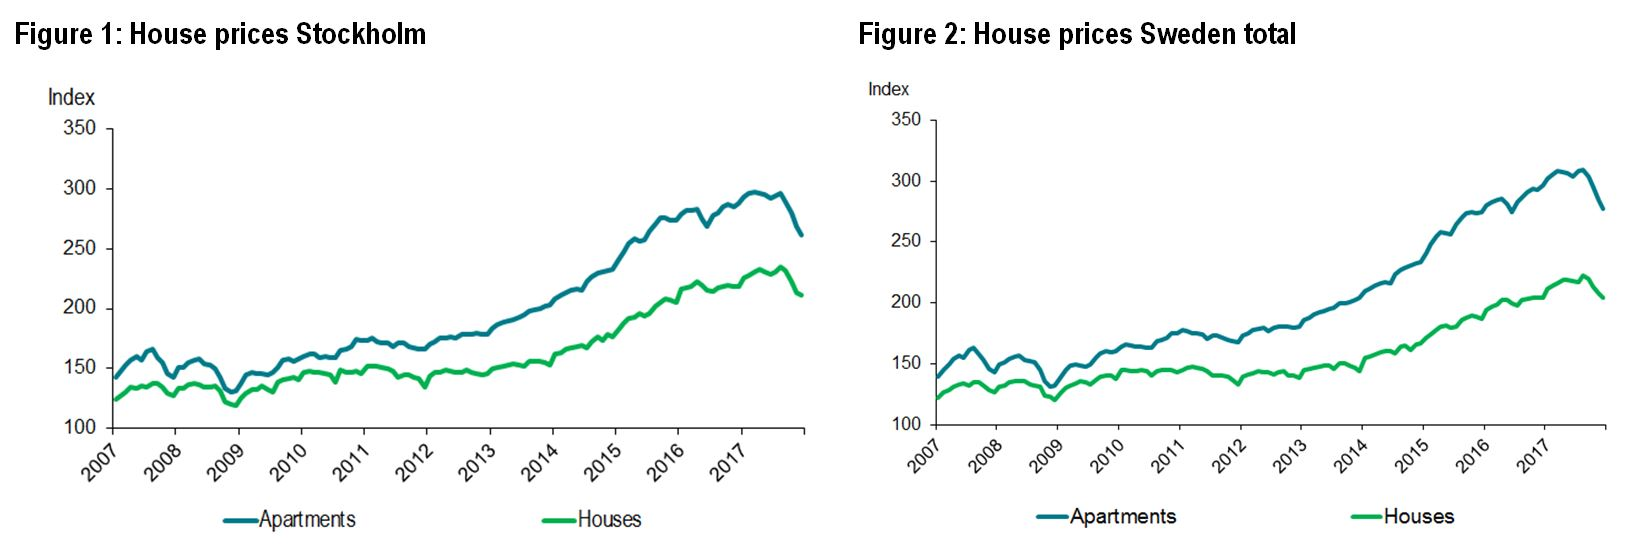 House prices Sweden and Stockholm